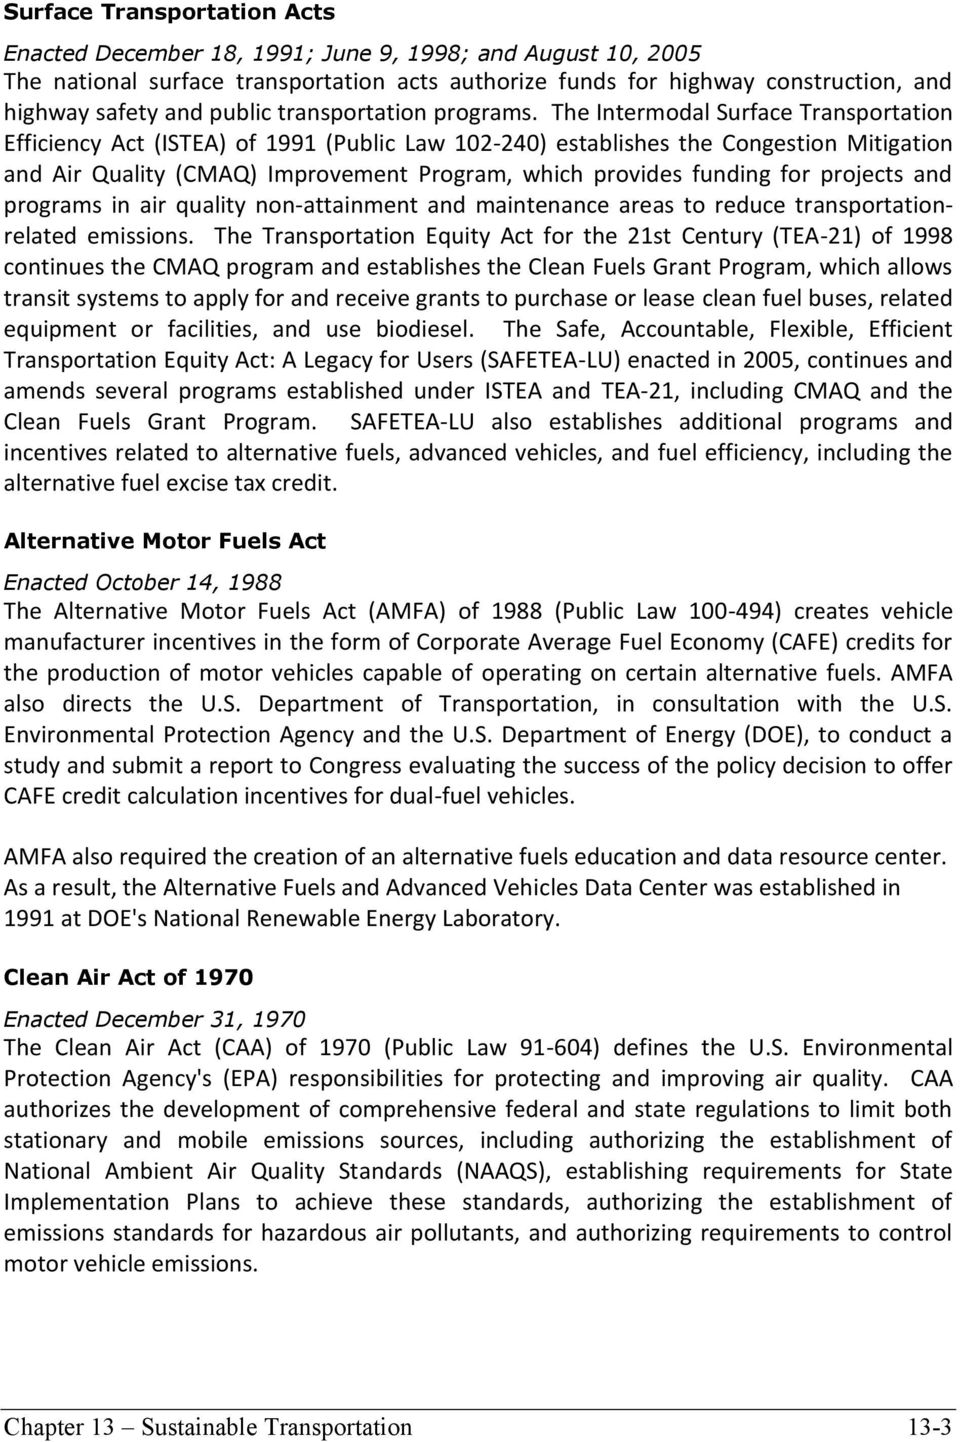 The Intermodal Surface Transportation Efficiency Act (ISTEA) of 1991 (Public Law 102-240) establishes the Congestion Mitigation and Air Quality (CMAQ) Improvement Program, which provides funding for